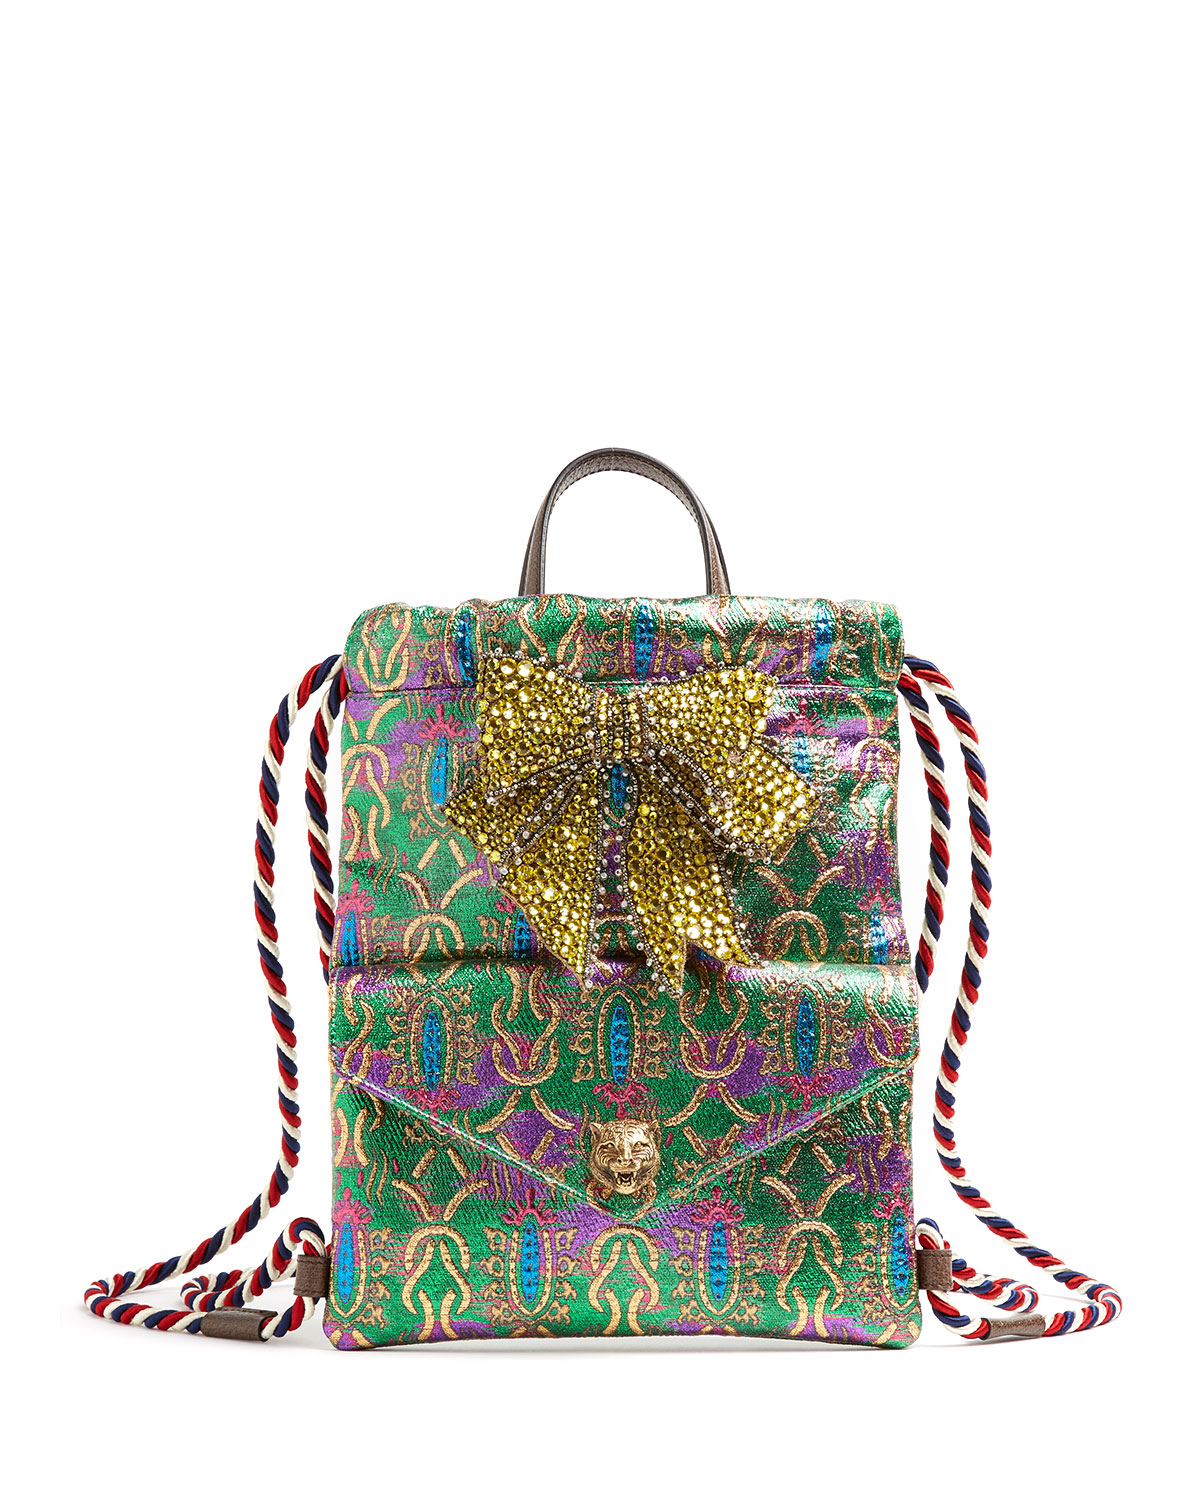 071d669f3a4 Gucci Brocade Techpack with Bow